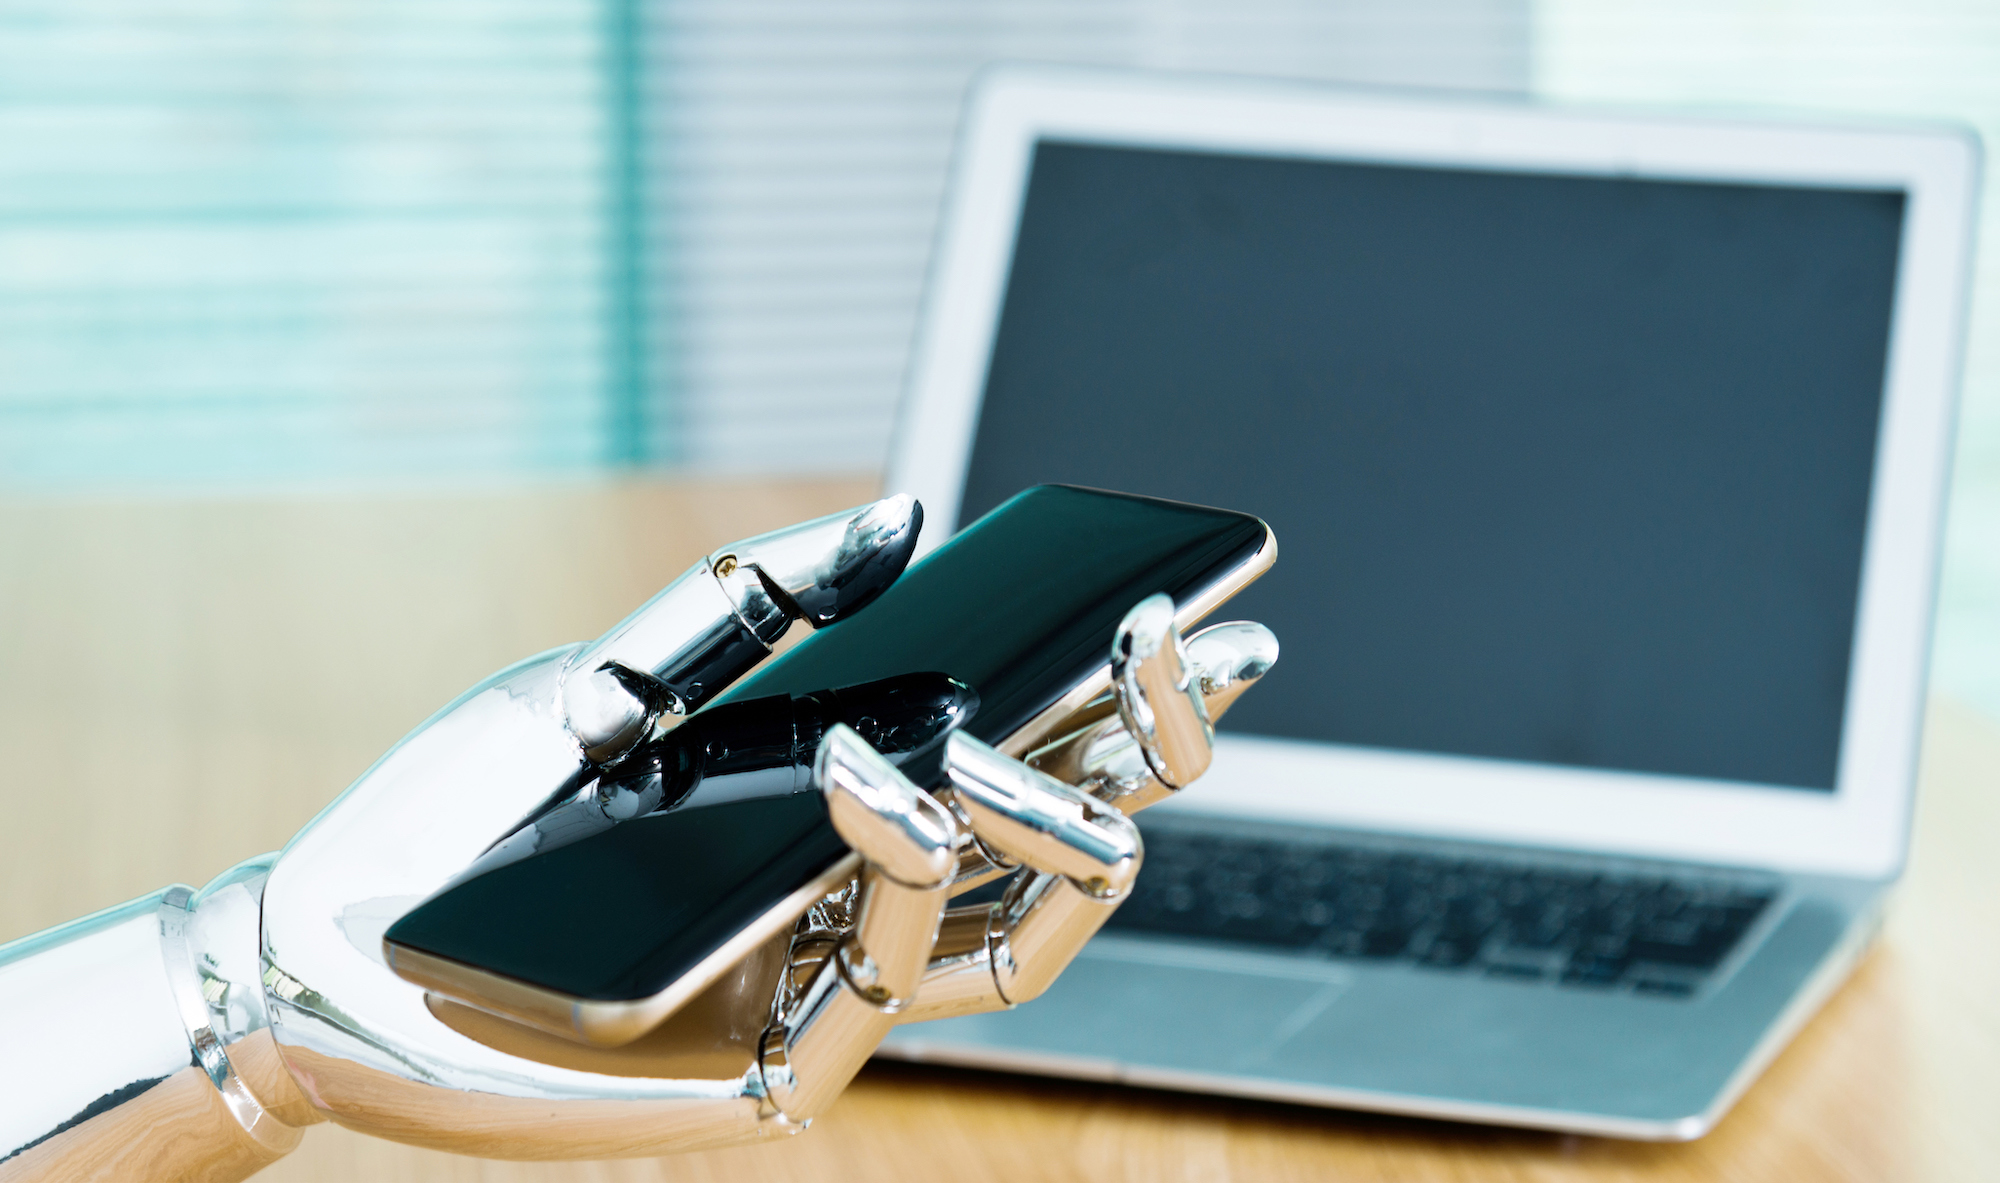 Robot hand holding a phone to indicate an SMS auto reply